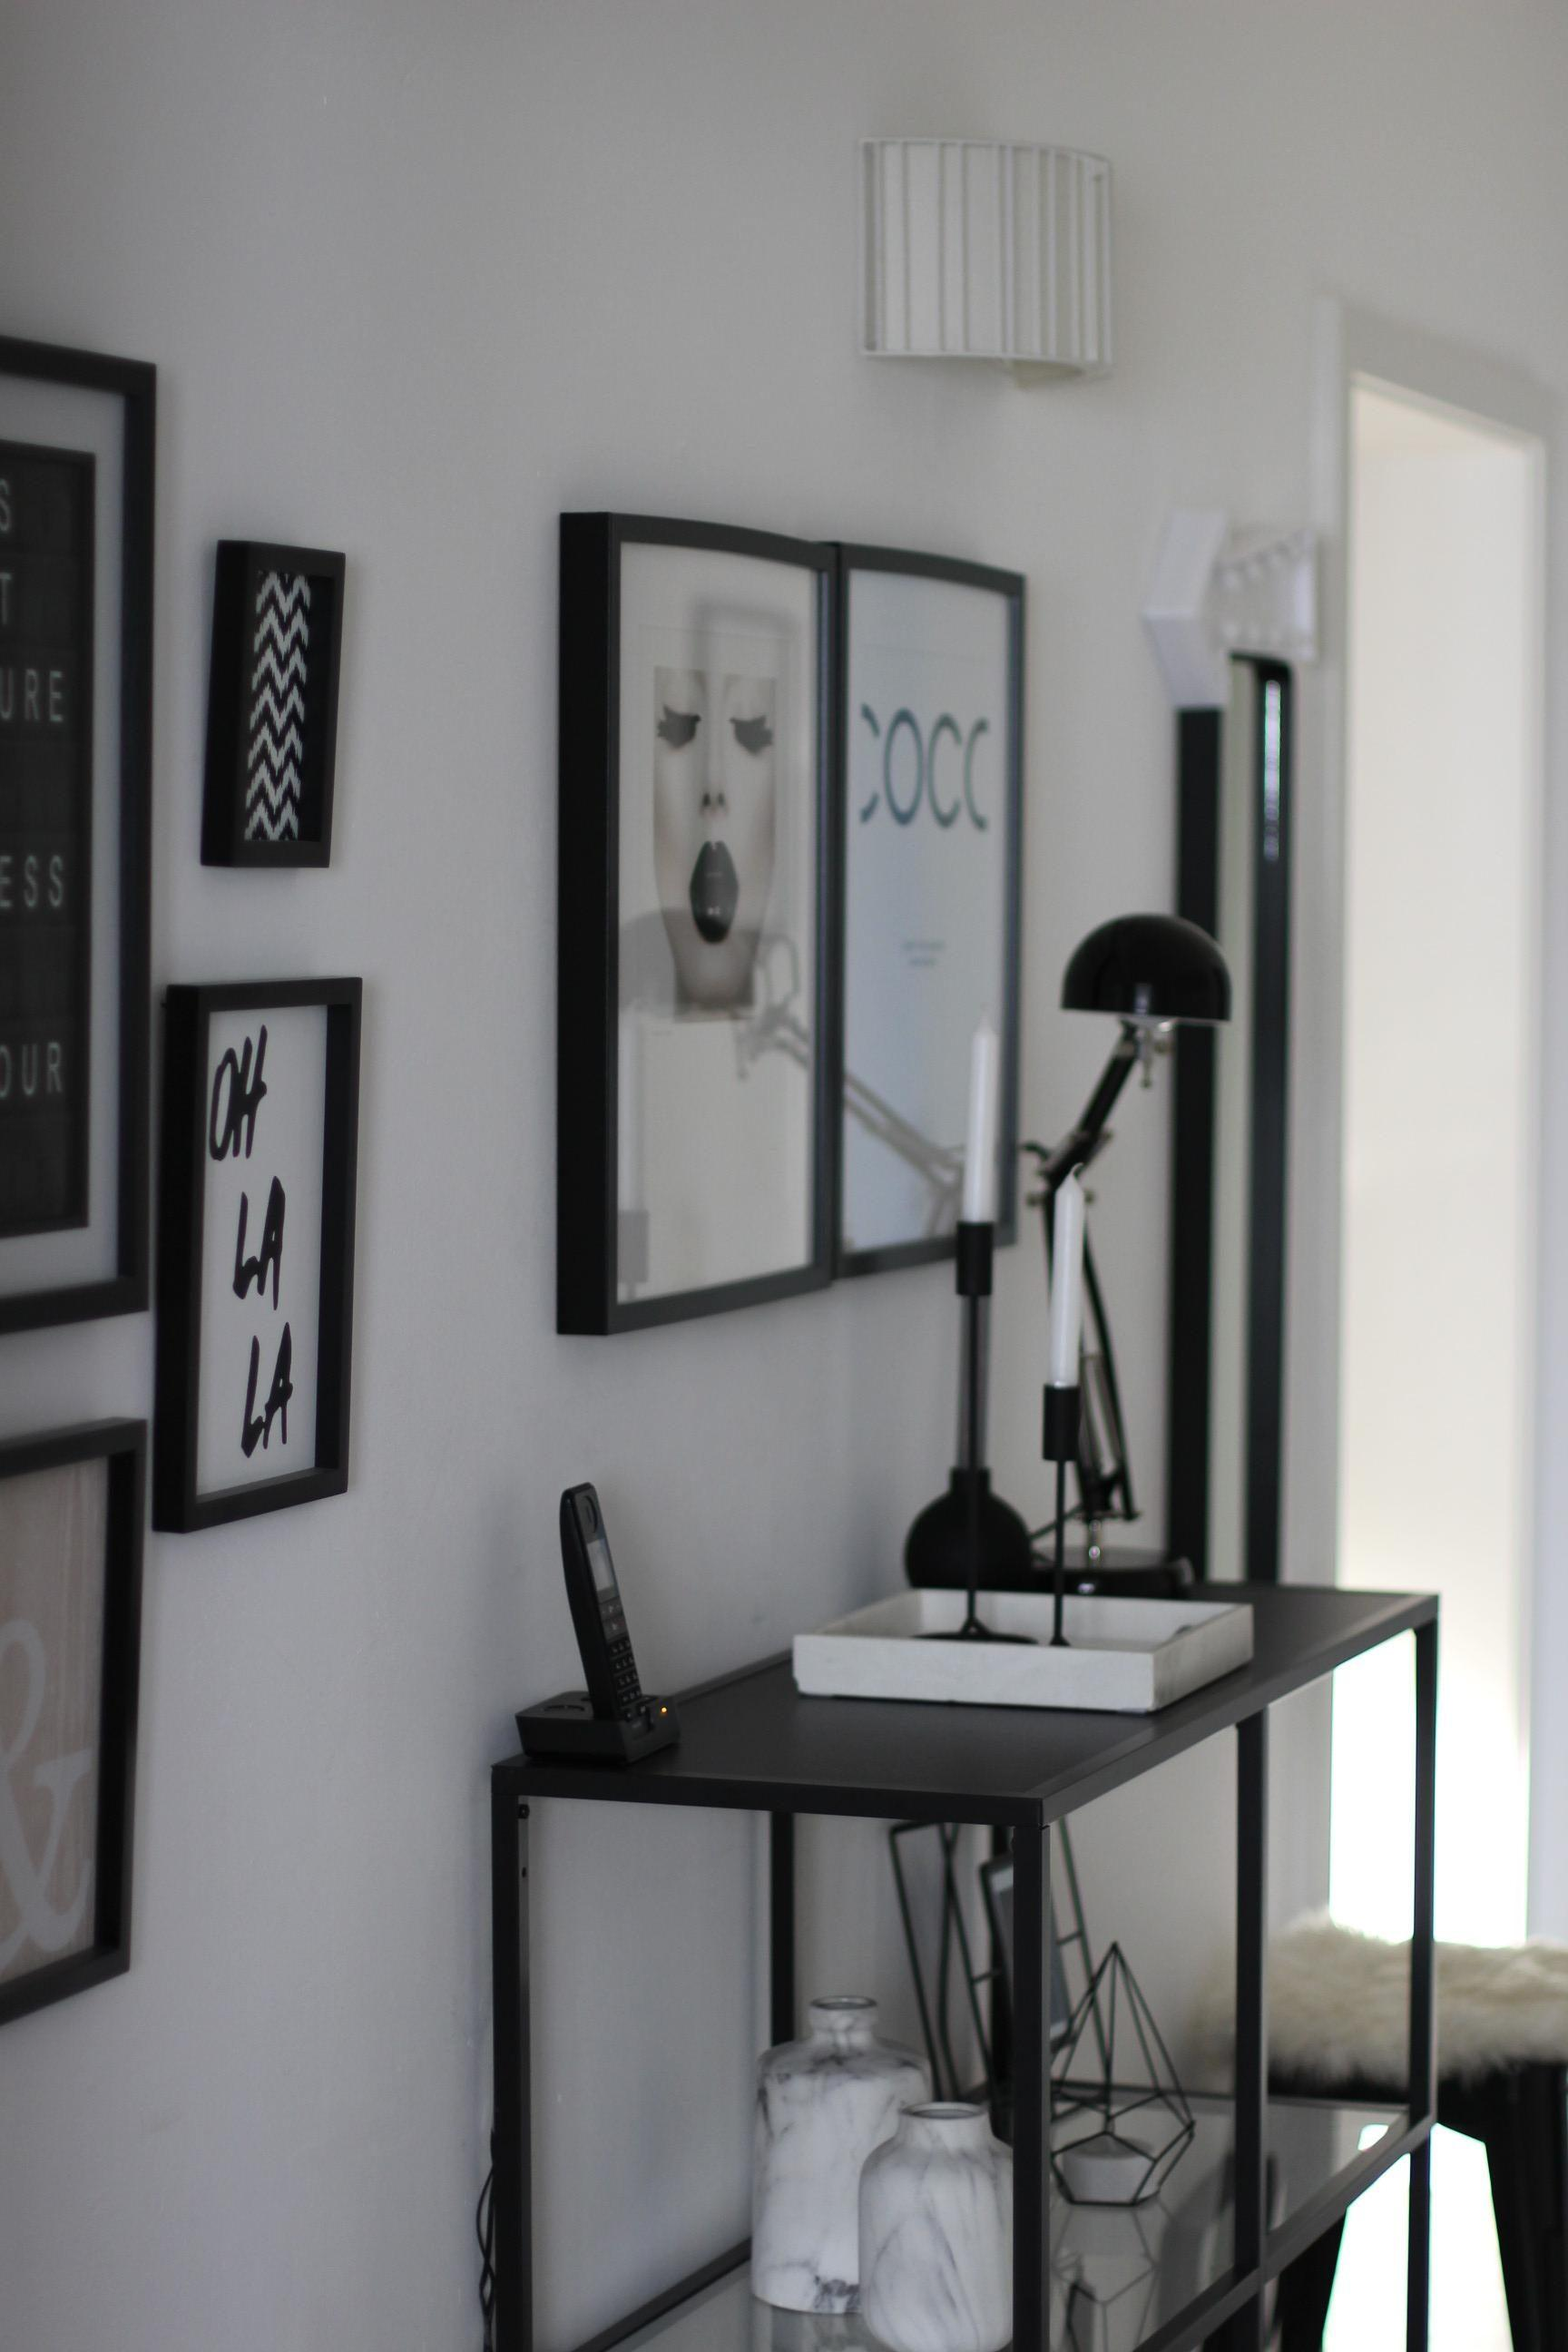 Flurstory blackandwhiteinterior monochromehome whiteliving industrialinterior nordicliving  610b9216 37dd 4af2 aad2 65cf80081348